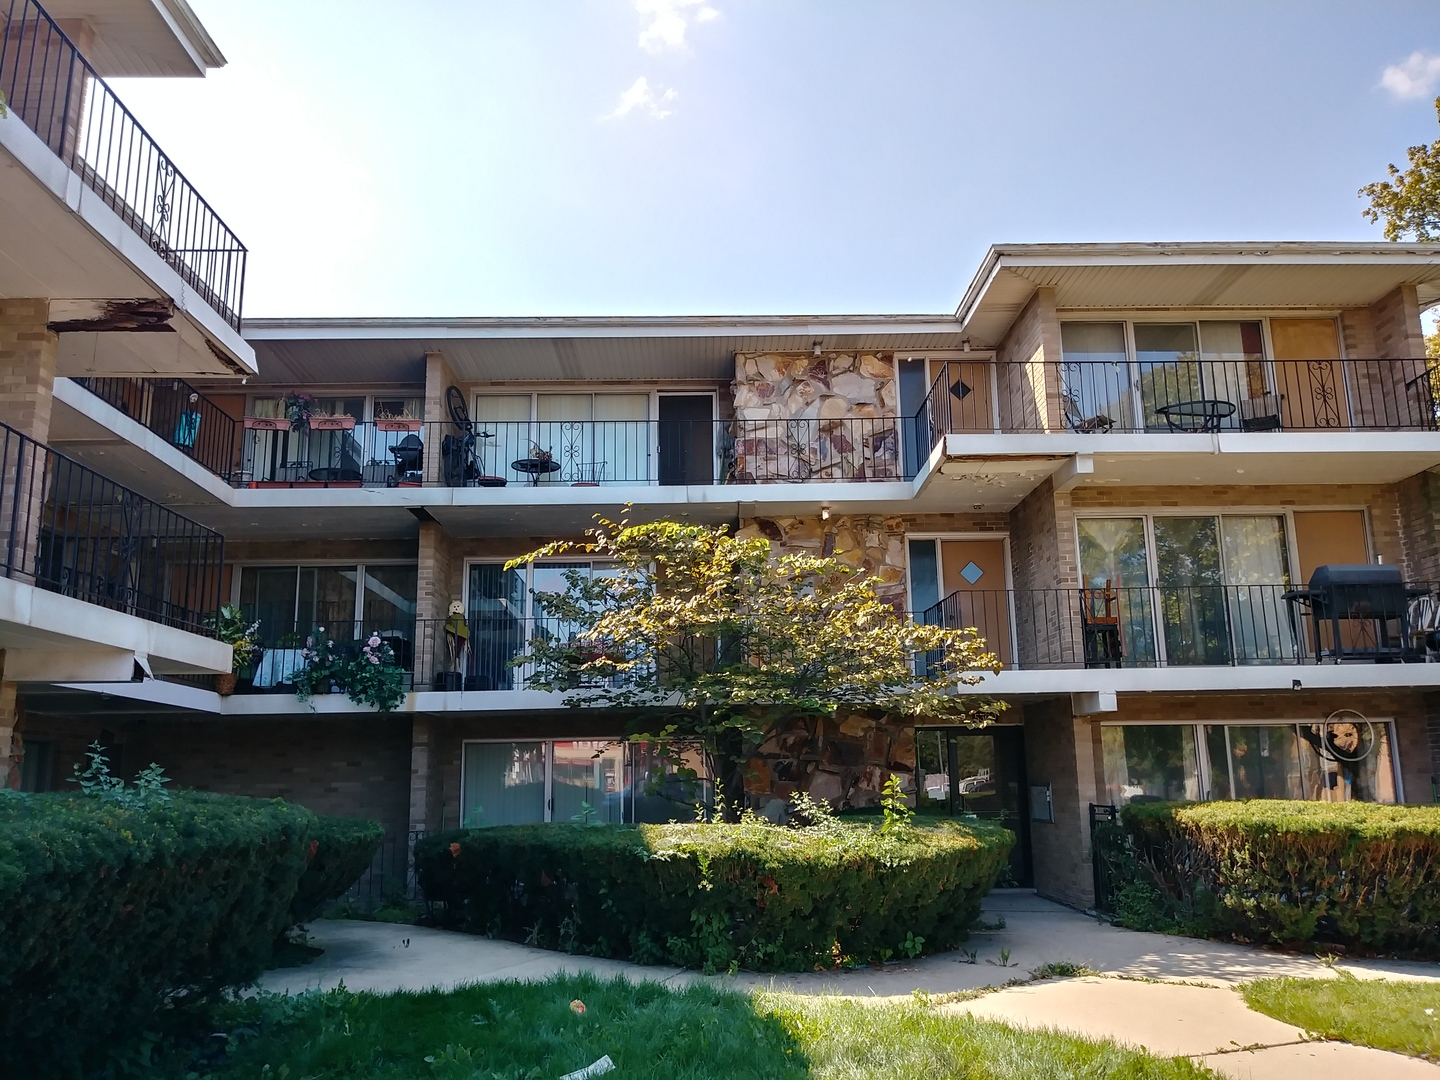 5300 Kedzie Unit Unit 202 ,Chicago, Illinois 60632